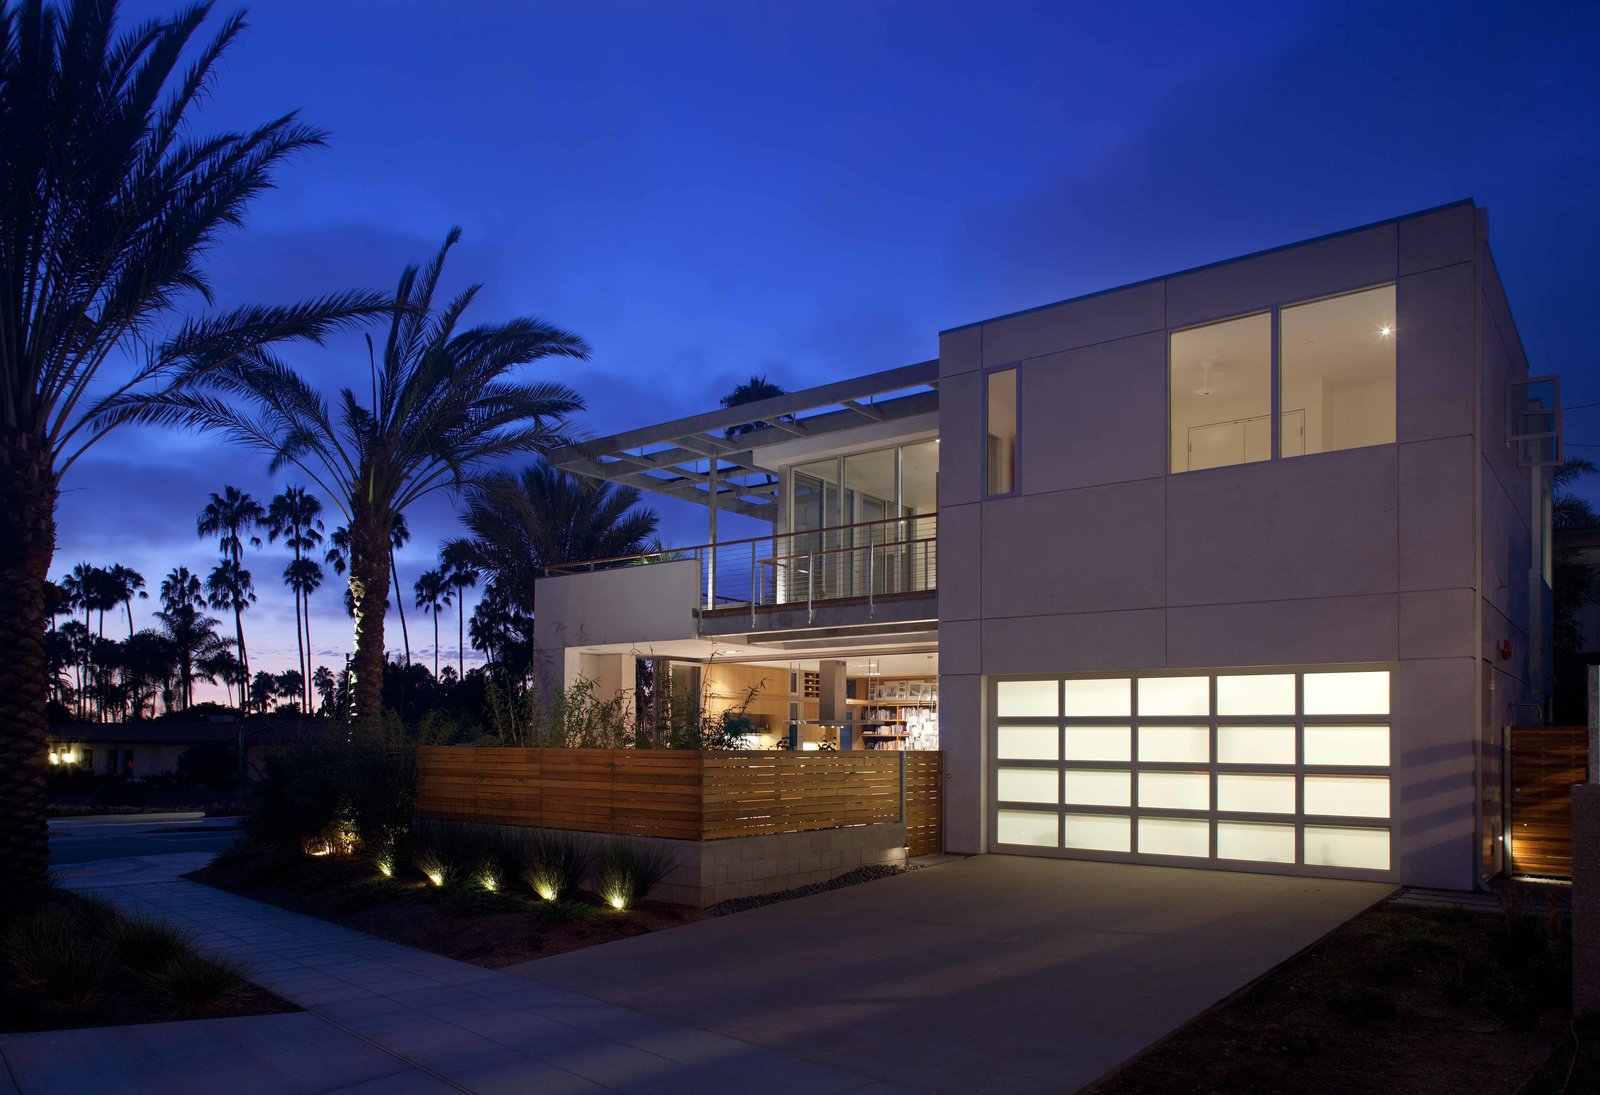 Green Home in La Jolla Blends Indoors and Outdoors - Photo 4 of 7 -